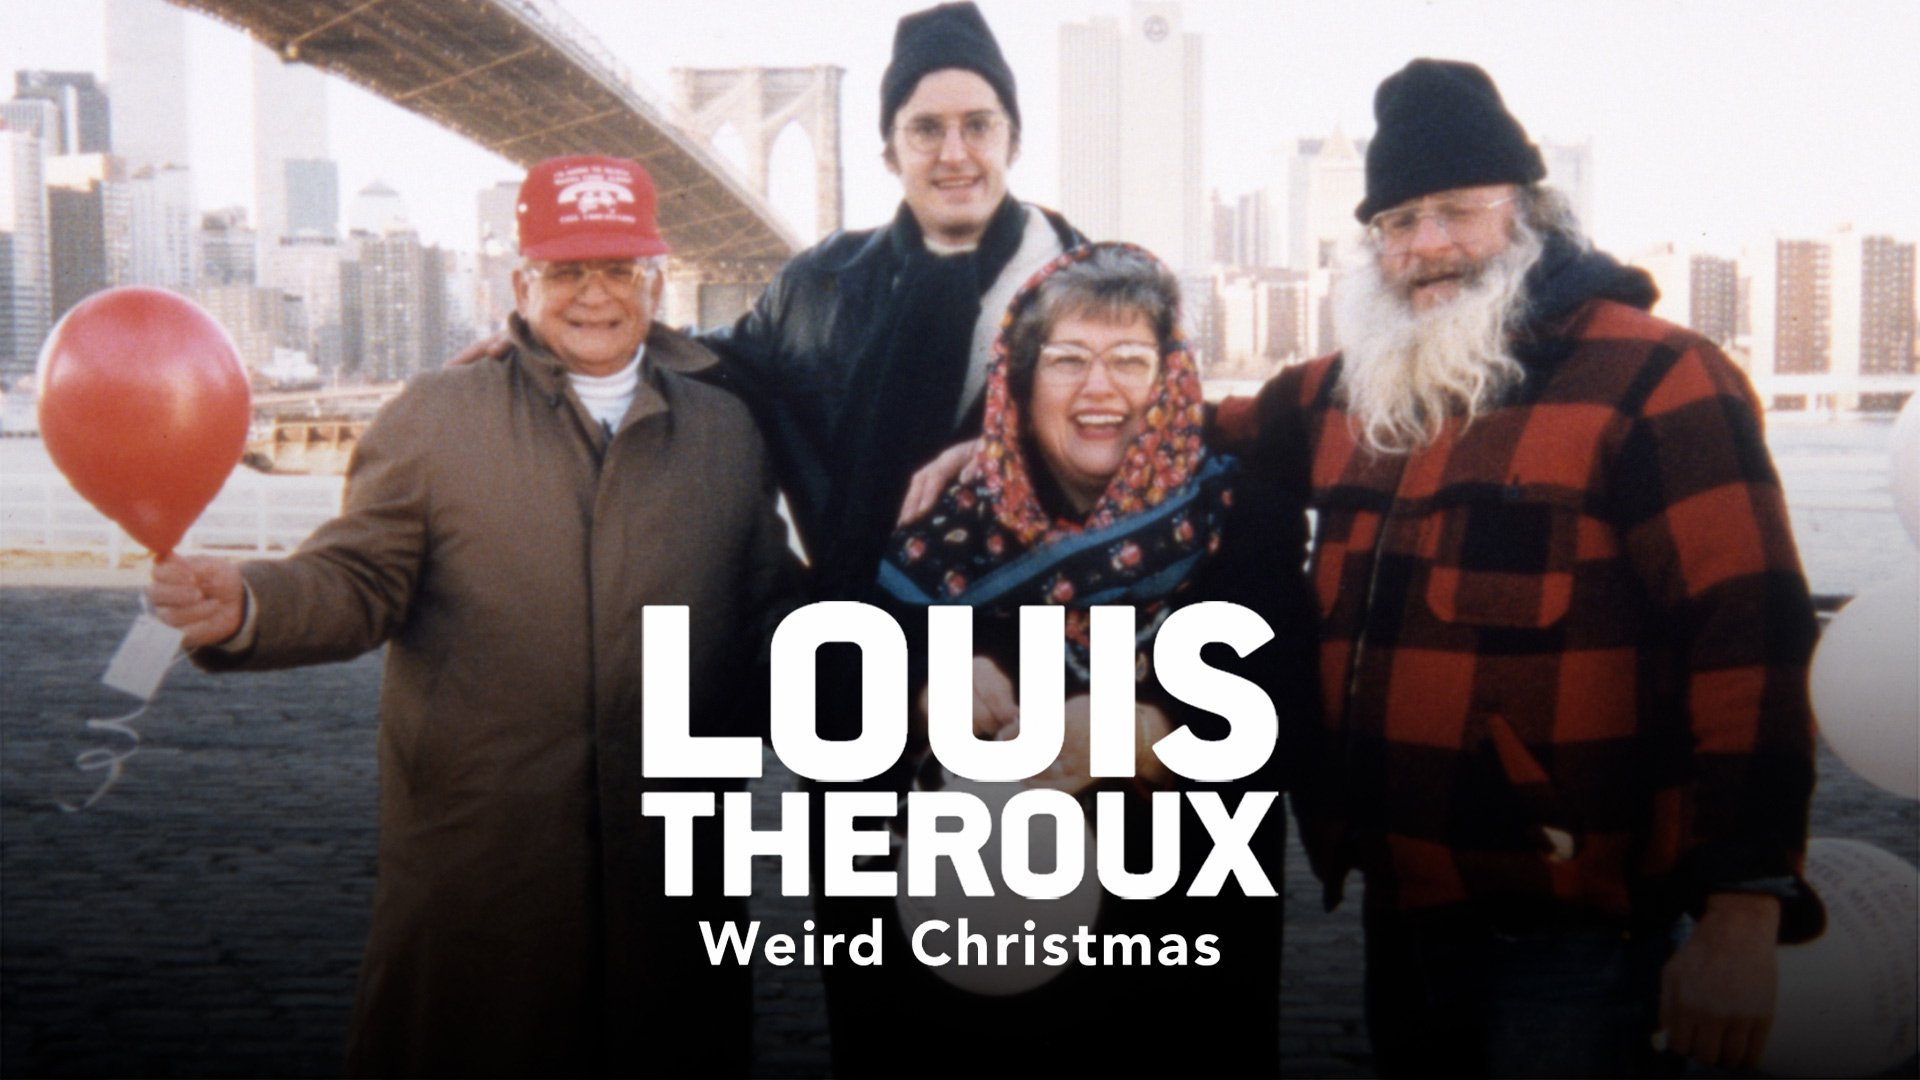 Louis Theroux's Weird Christmas on BritBox UK